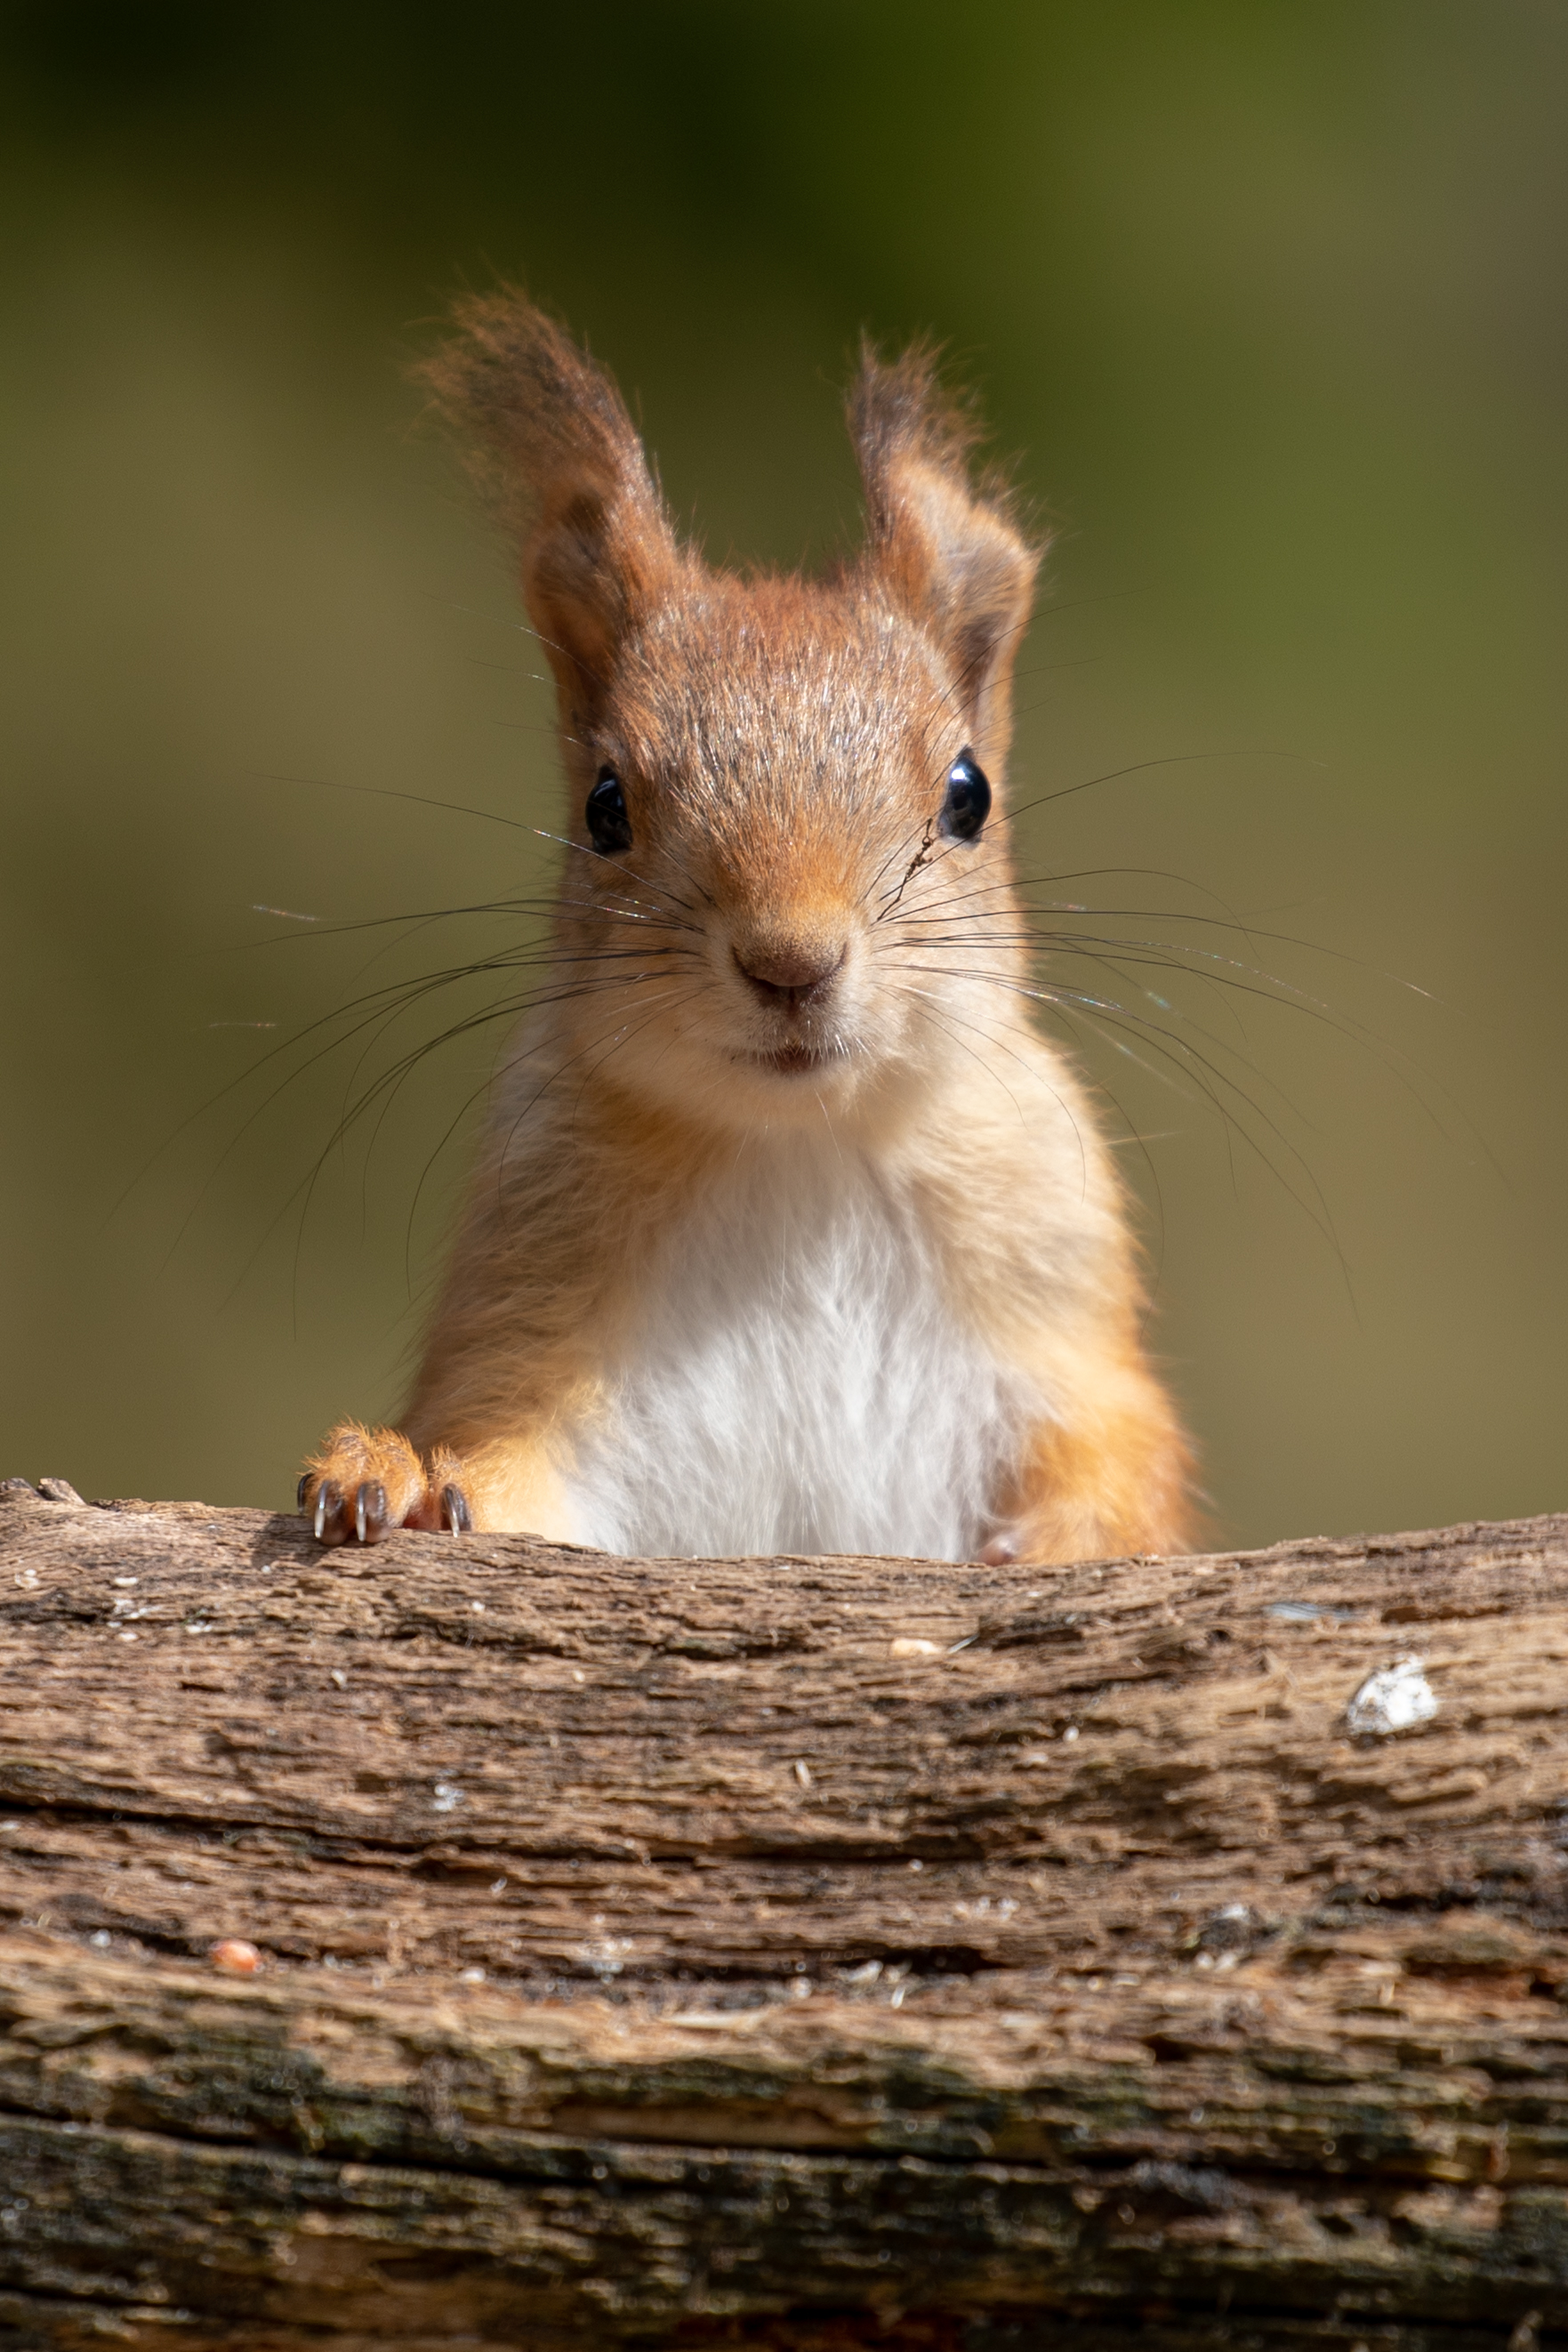 Finland - Red squirrel